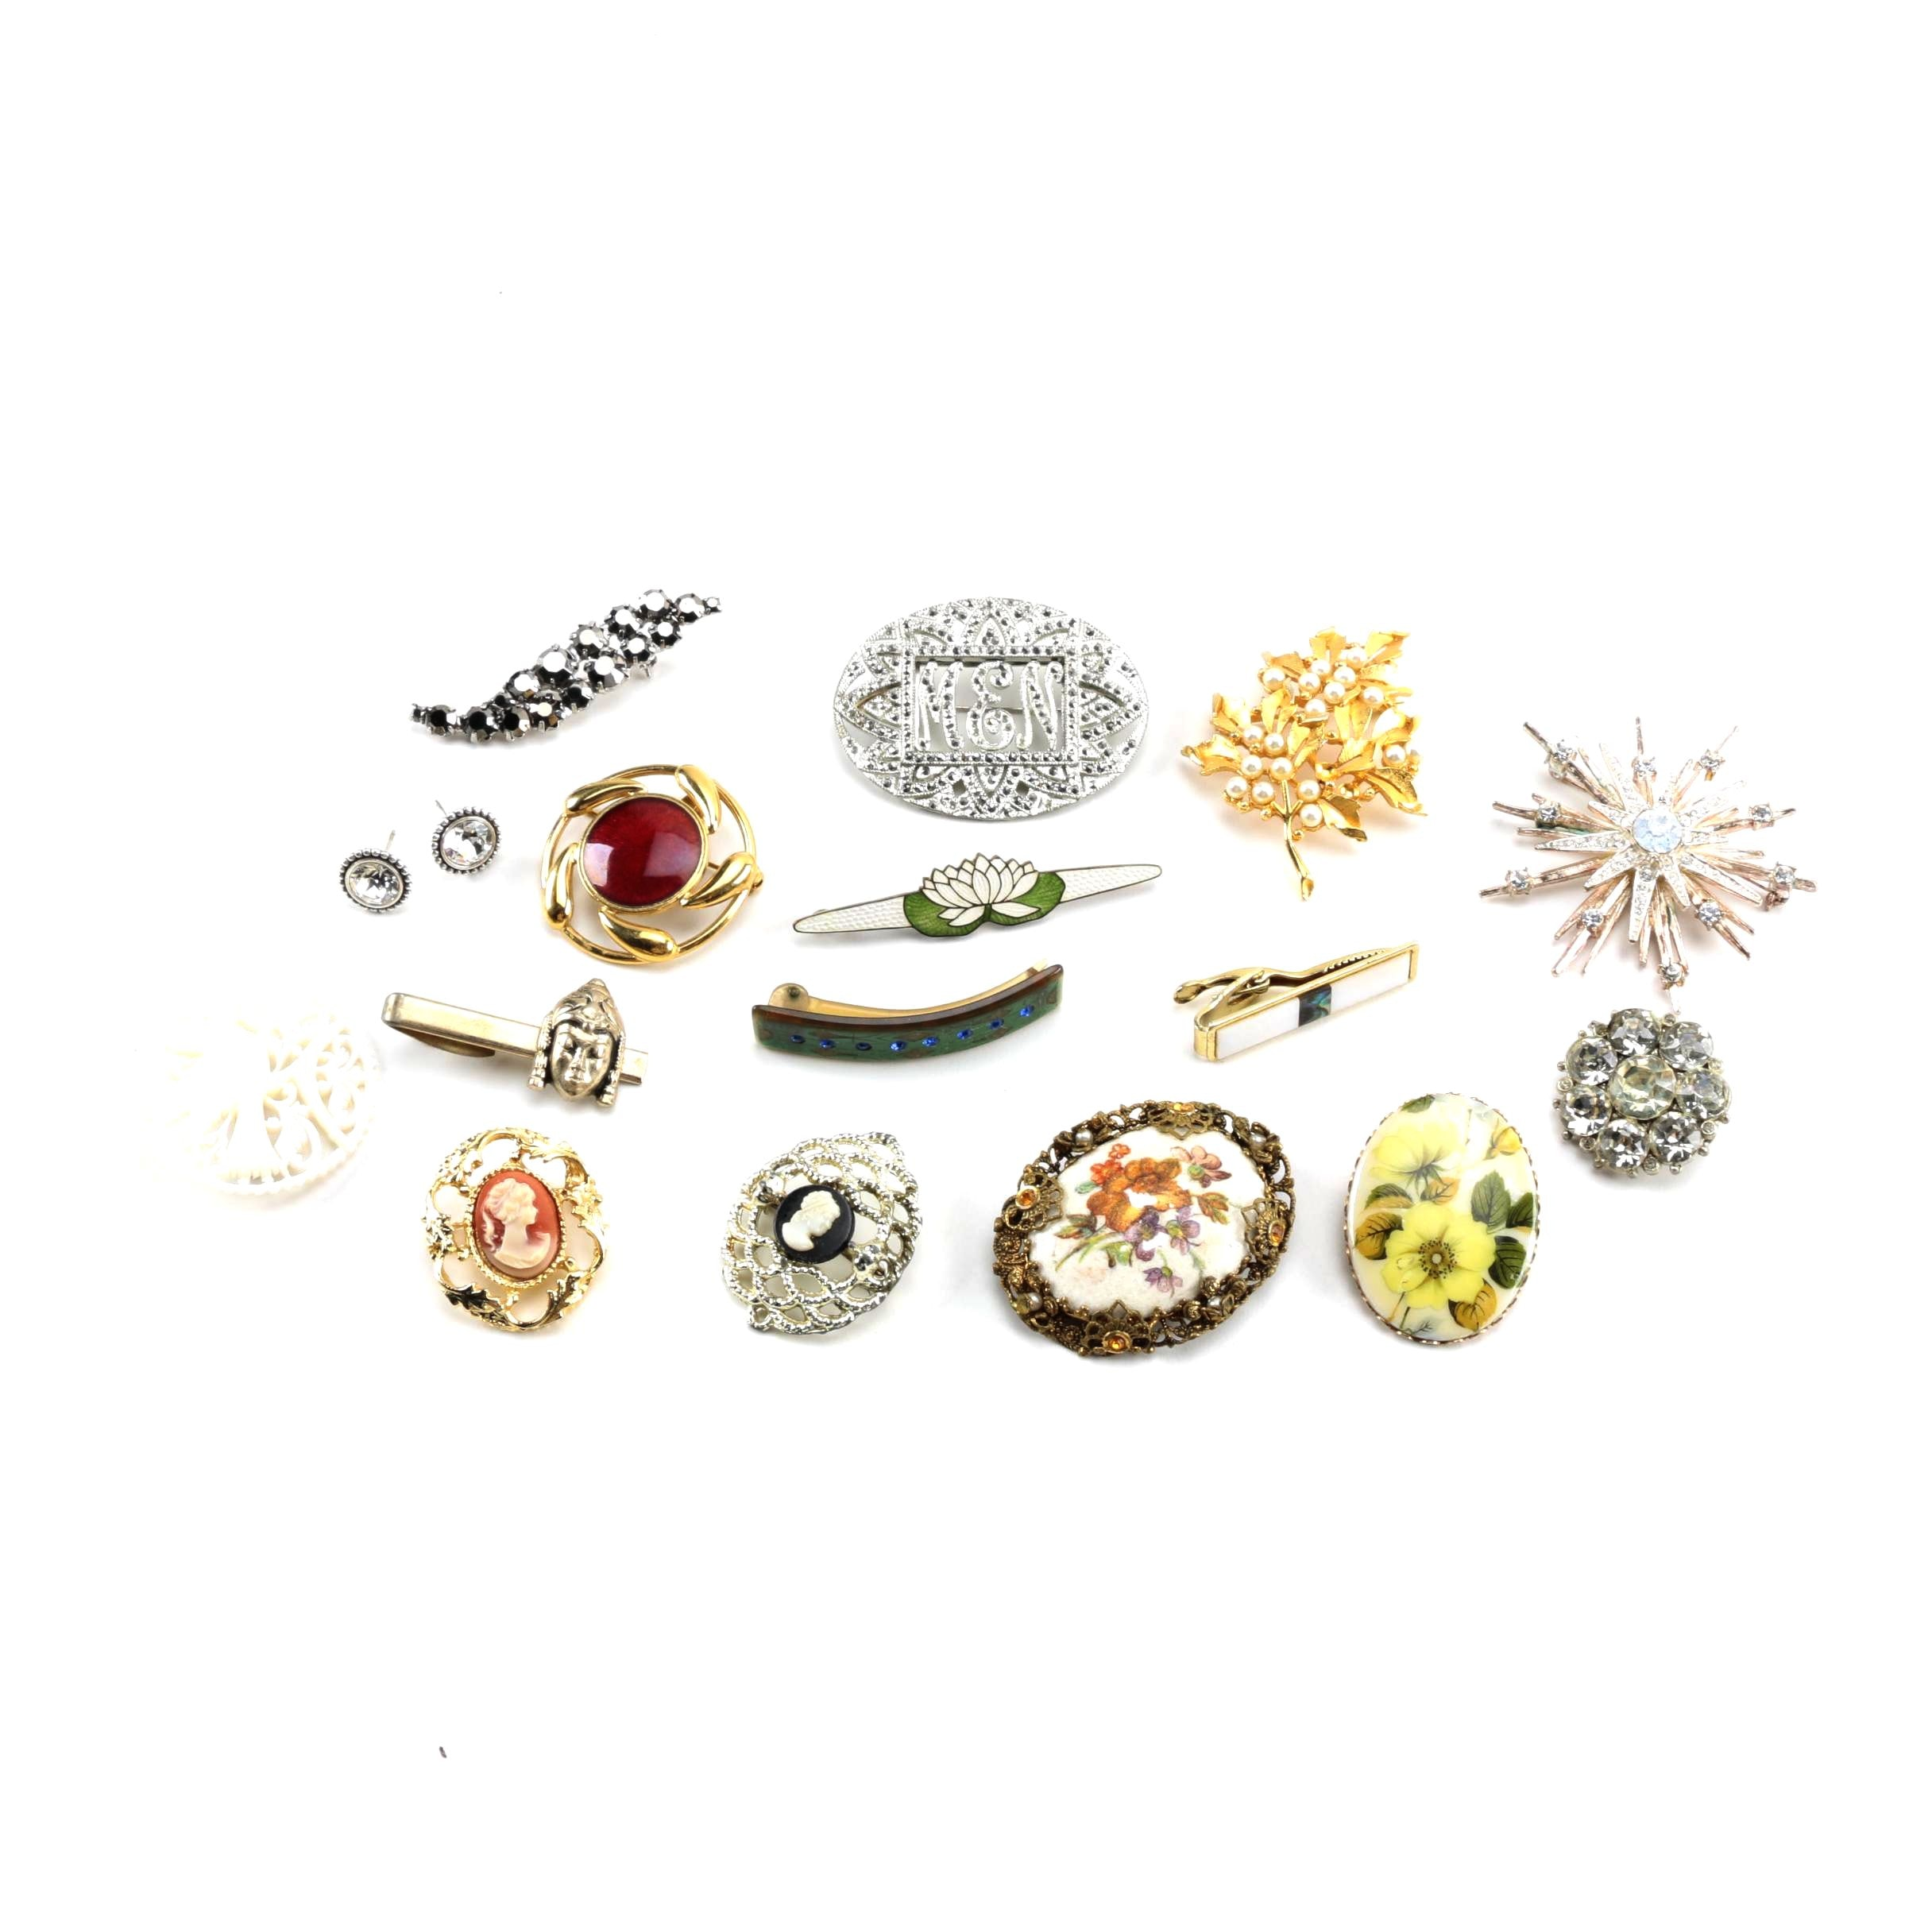 Assortment of Vintage Jewelry